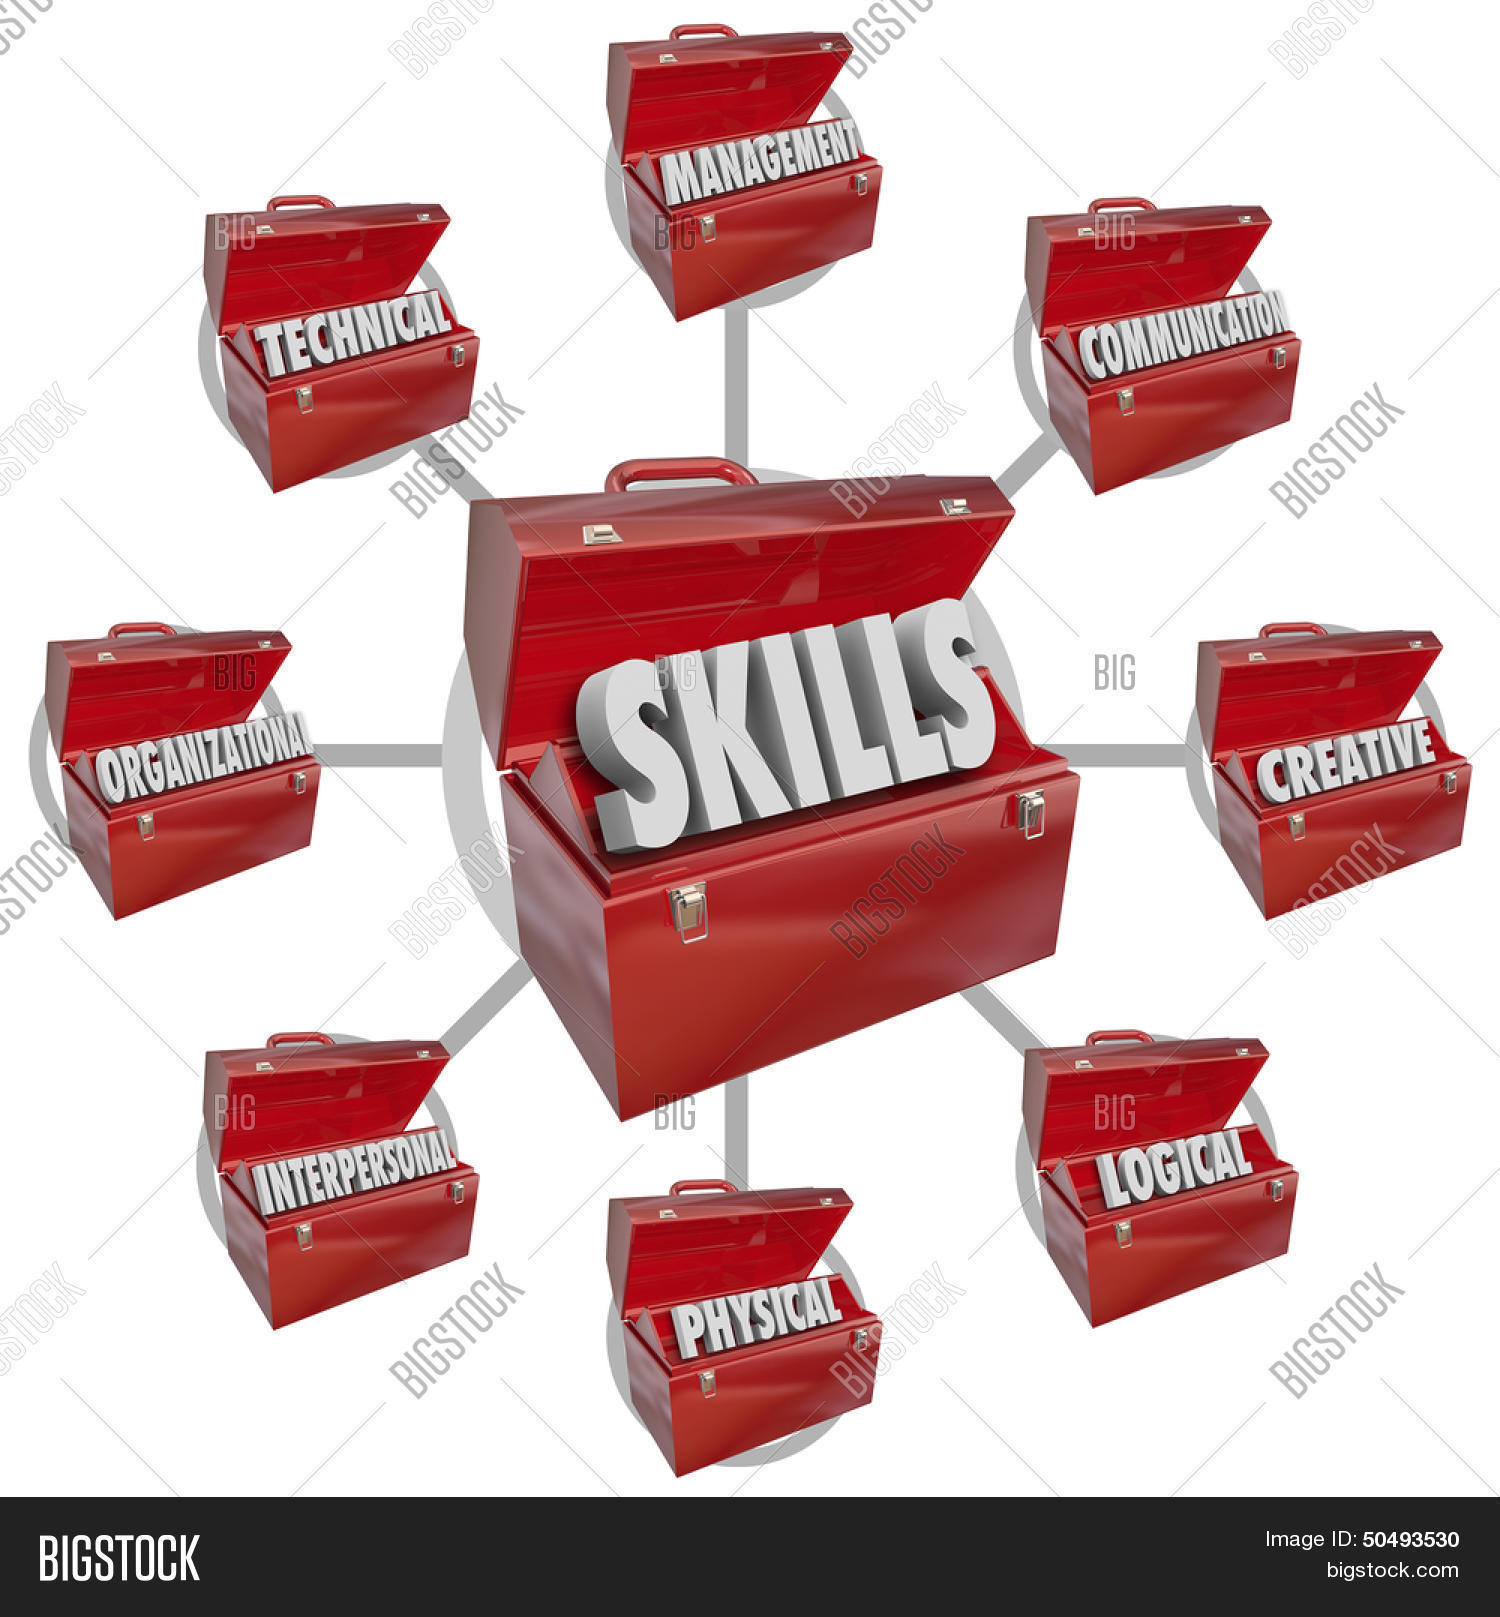 the word skills on a red metal lunchbox to illustrate desirable the word skills on a red metal lunchbox to illustrate desirable qualities and characteristics in a